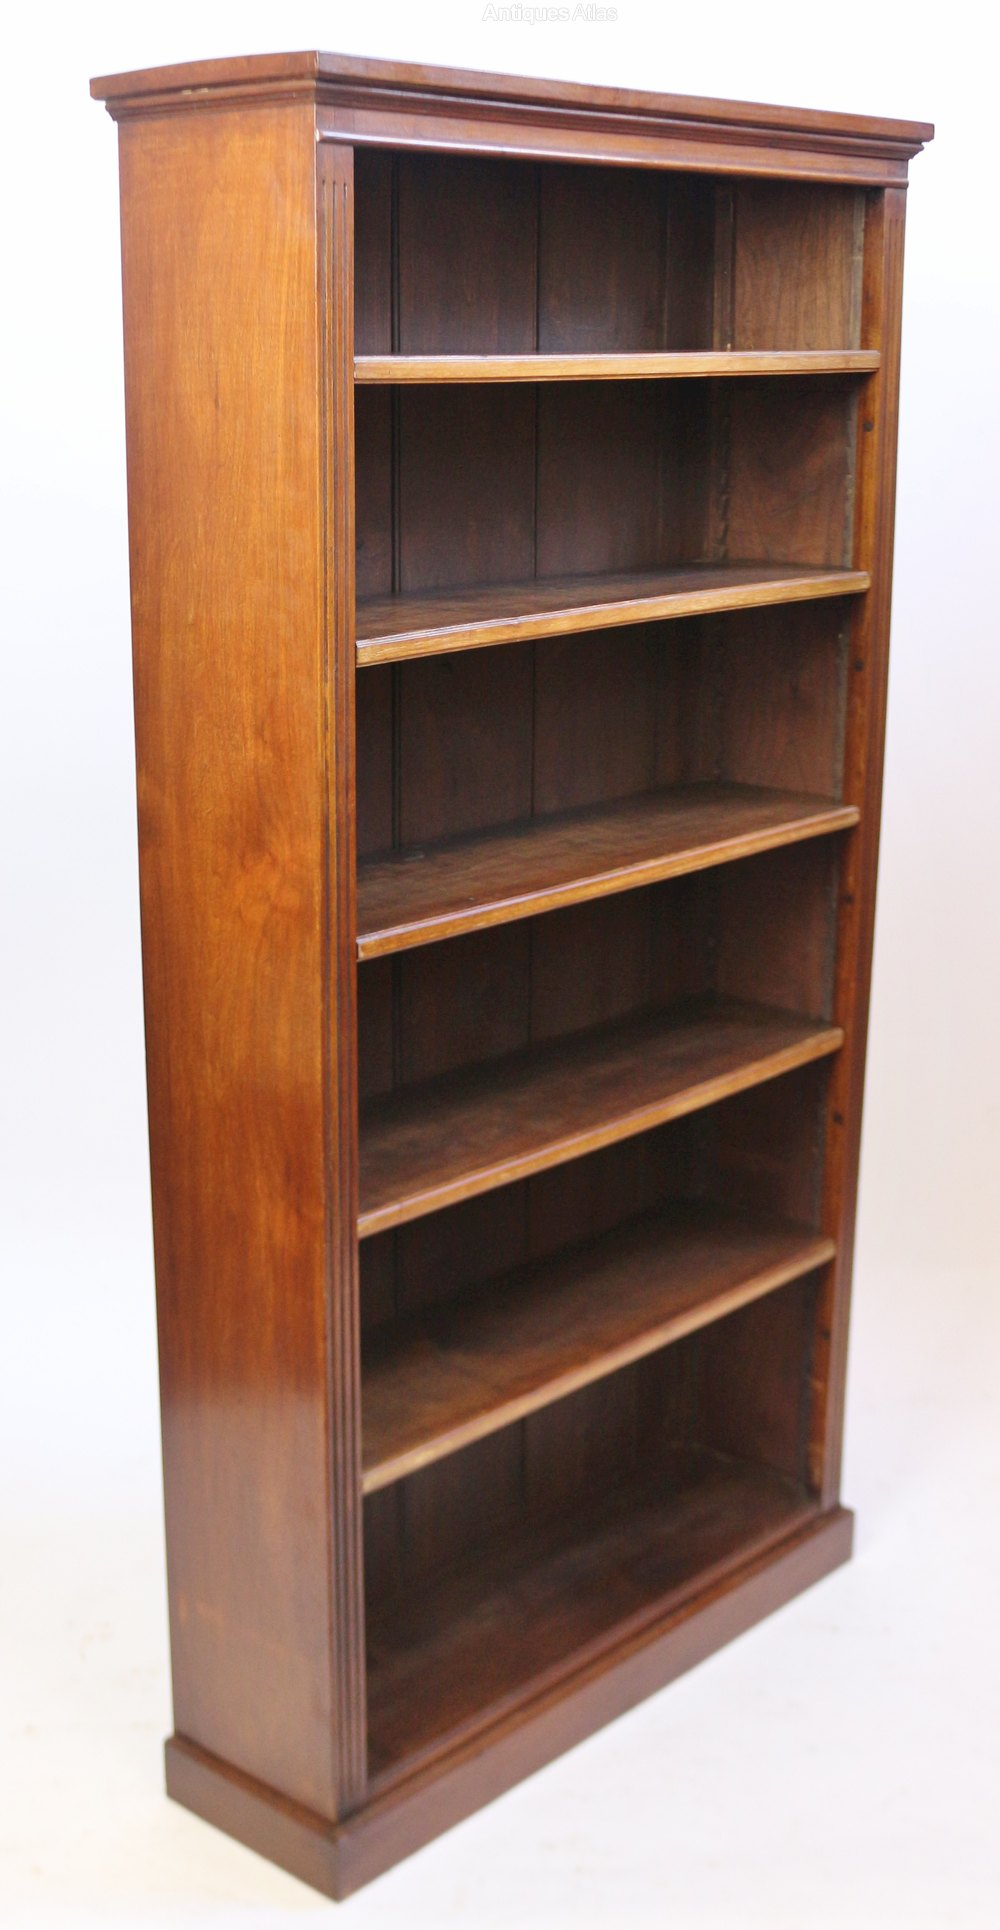 Late Victorian Solid Walnut Tall Open Bookcase